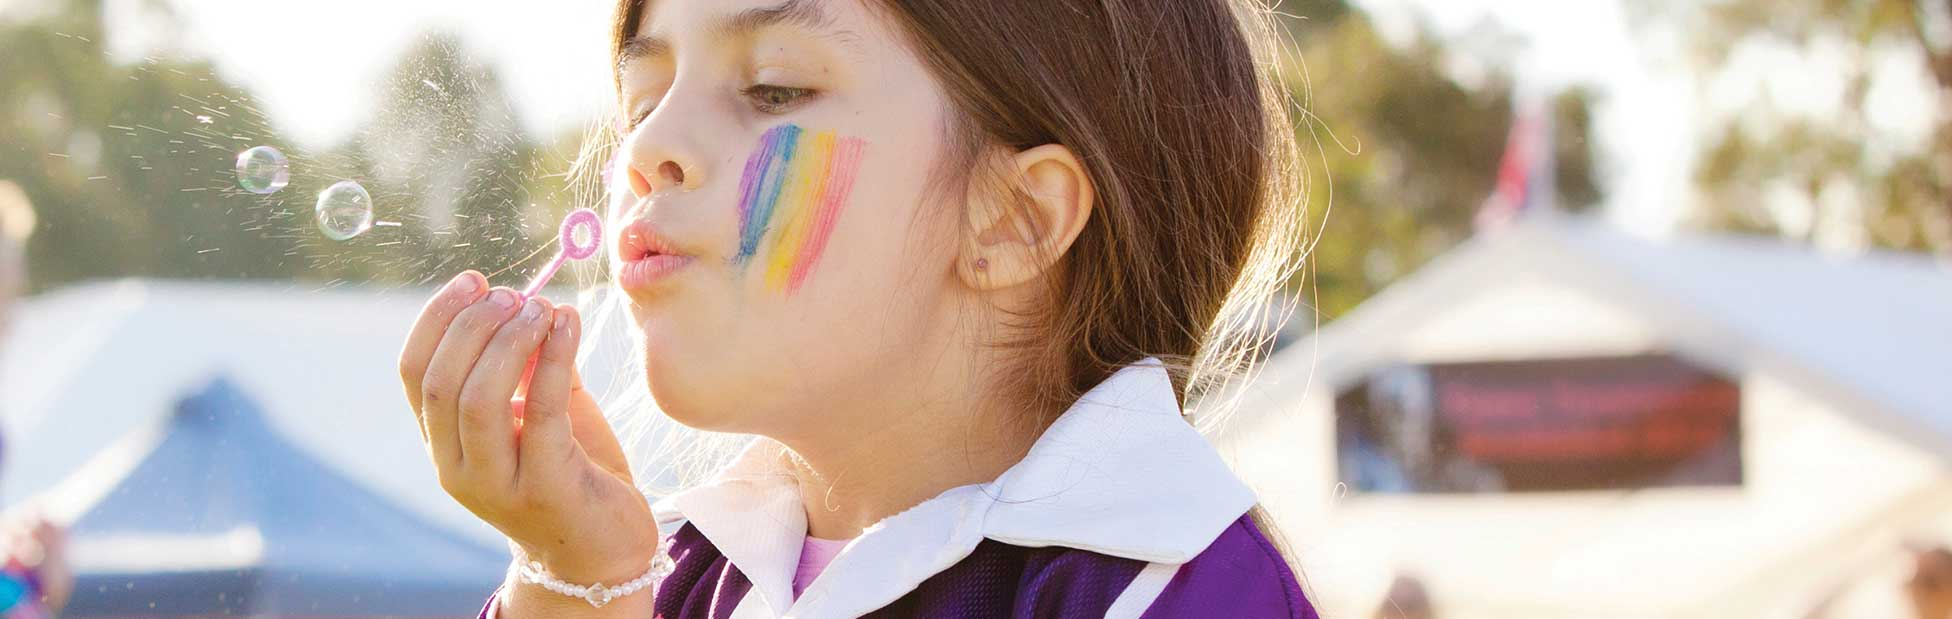 Young girl with rainbow painted on her face blowing bubbles